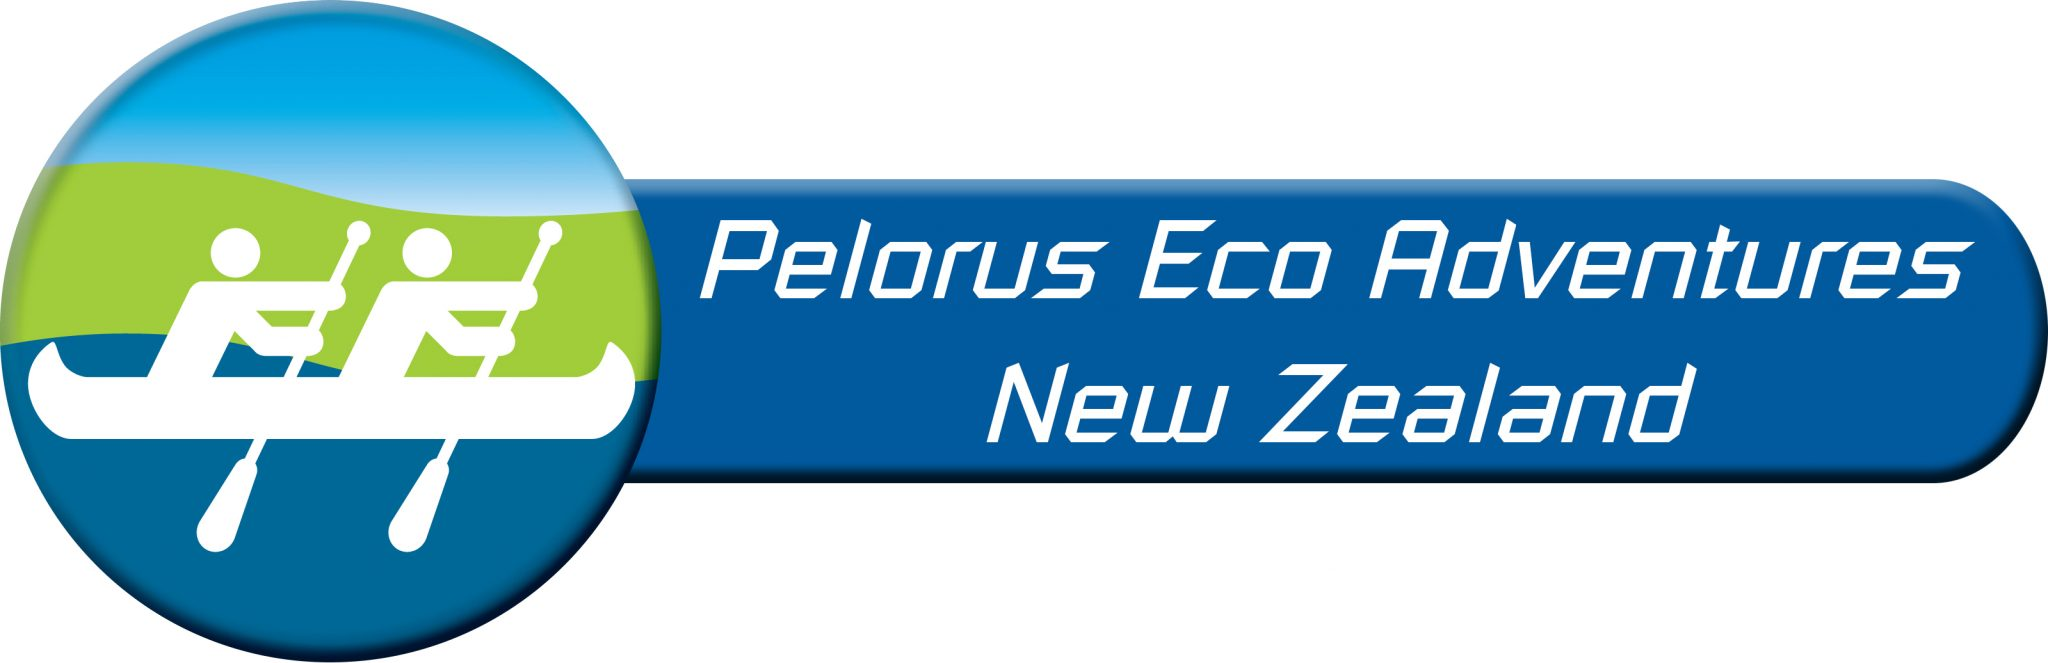 Pelorus Eco Adventures Logo